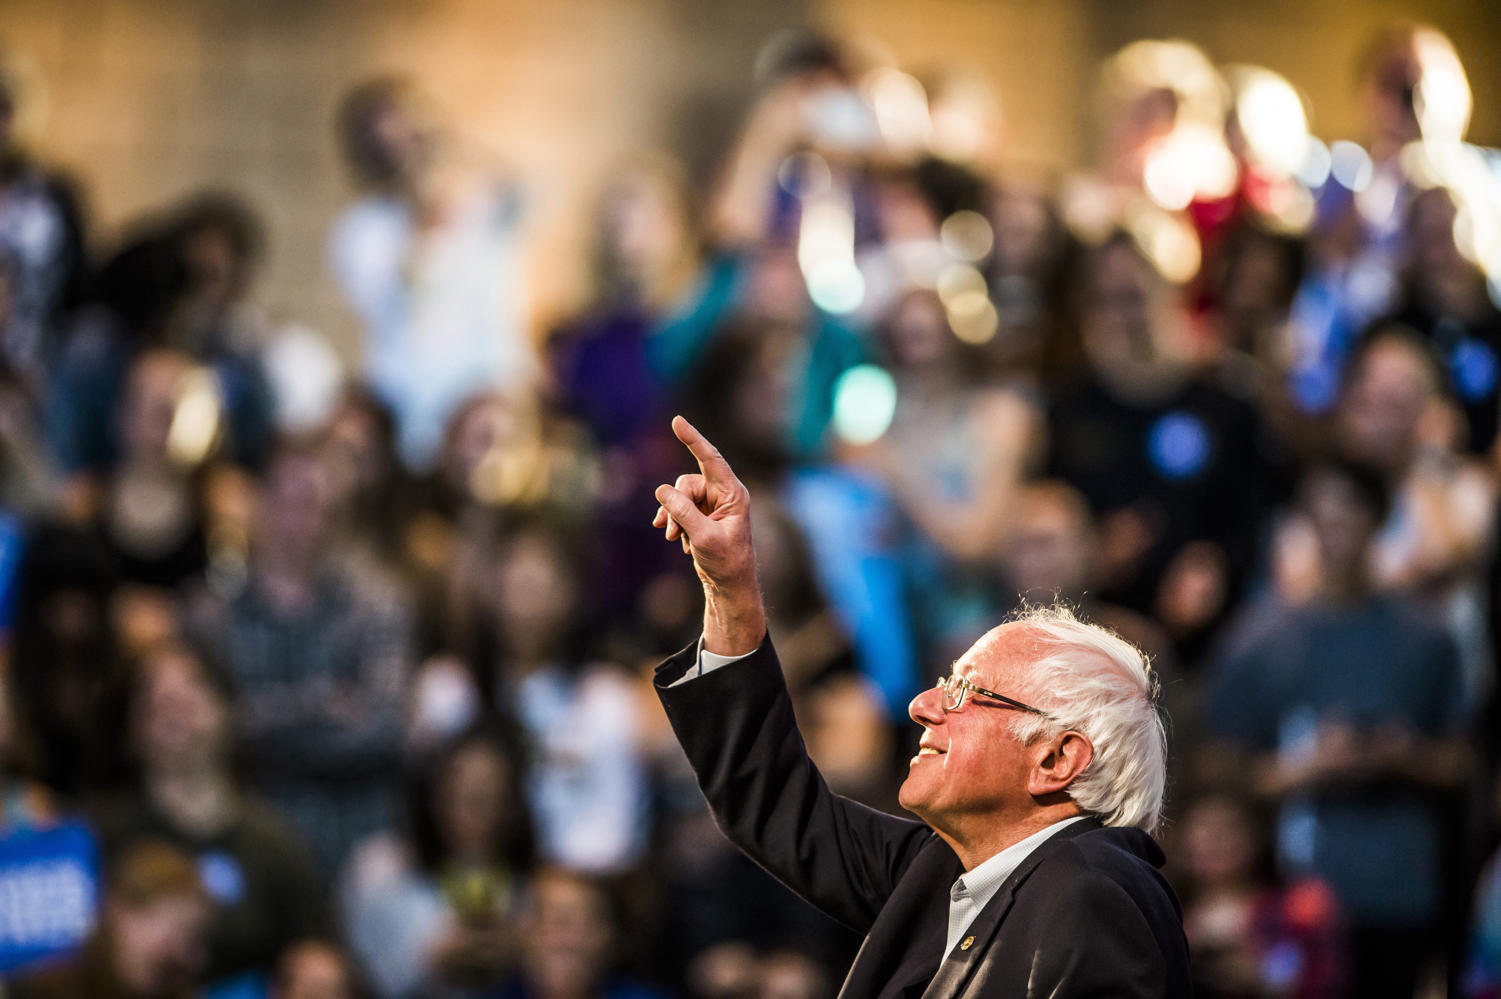 """In response to the current student debt crisis, Sanders has pushed for free tuition at public four-year colleges and universities. He wants to cut all student loan interest rates in half and allow Americans to refinance their student loans at significantly lower interest rates. He wrote on his website: """"In a highly competitive global economy, we need the best-educated workforce in the world. It is insane and counter-productive to the best interests of our country and our future, that hundreds of thousands of bright young people cannot afford to go to college, and that millions of others leave school with a mountain of debt that burdens them for decades."""""""